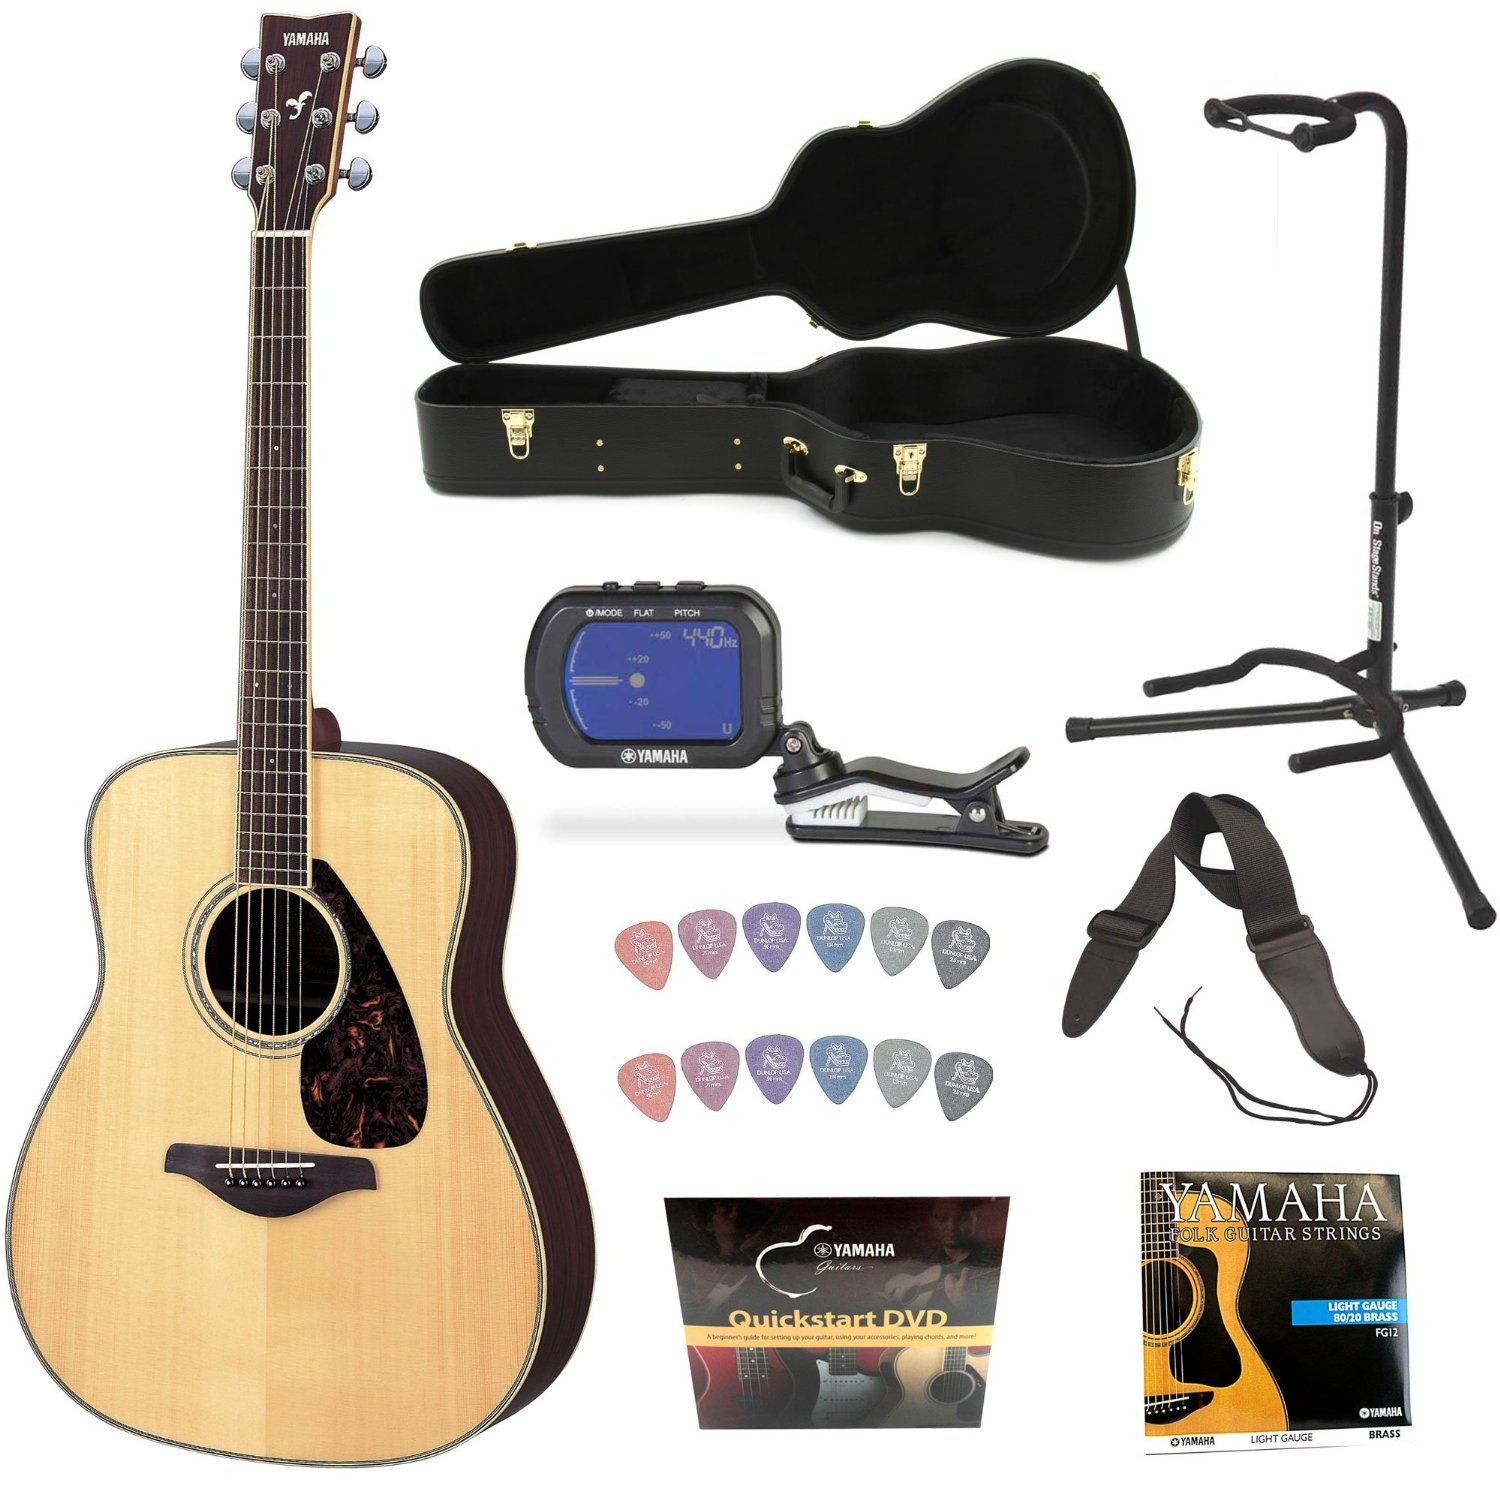 yamaha guitars yamaha fg730s acoustic guitar natural with yamaha hcag1 guitar case guitar. Black Bedroom Furniture Sets. Home Design Ideas